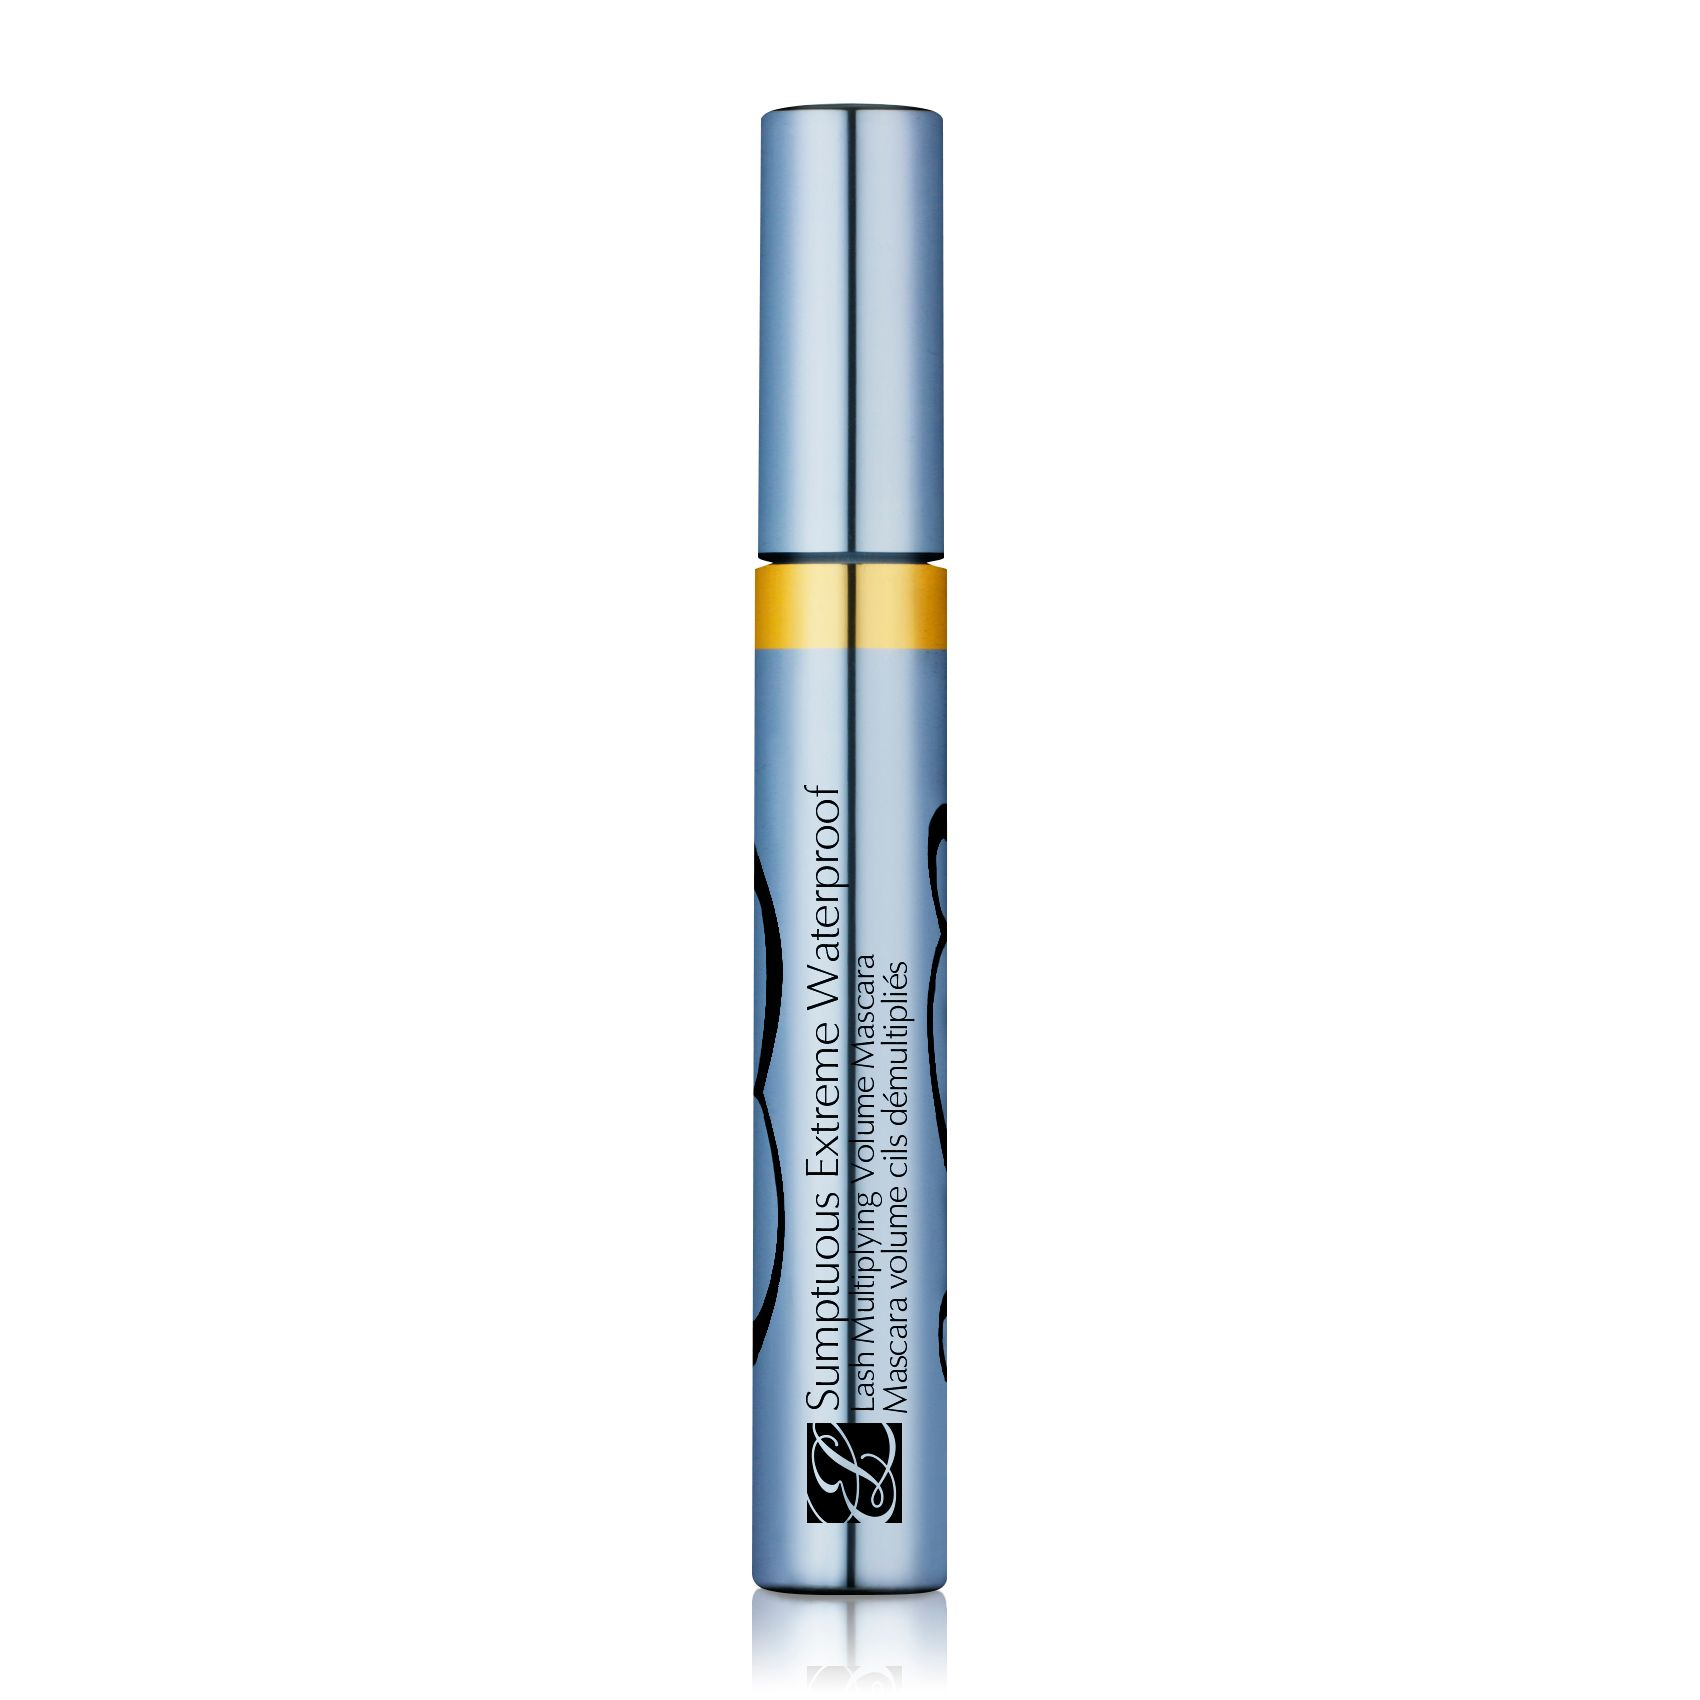 Sumptuous Extreme Waterproof Mascara